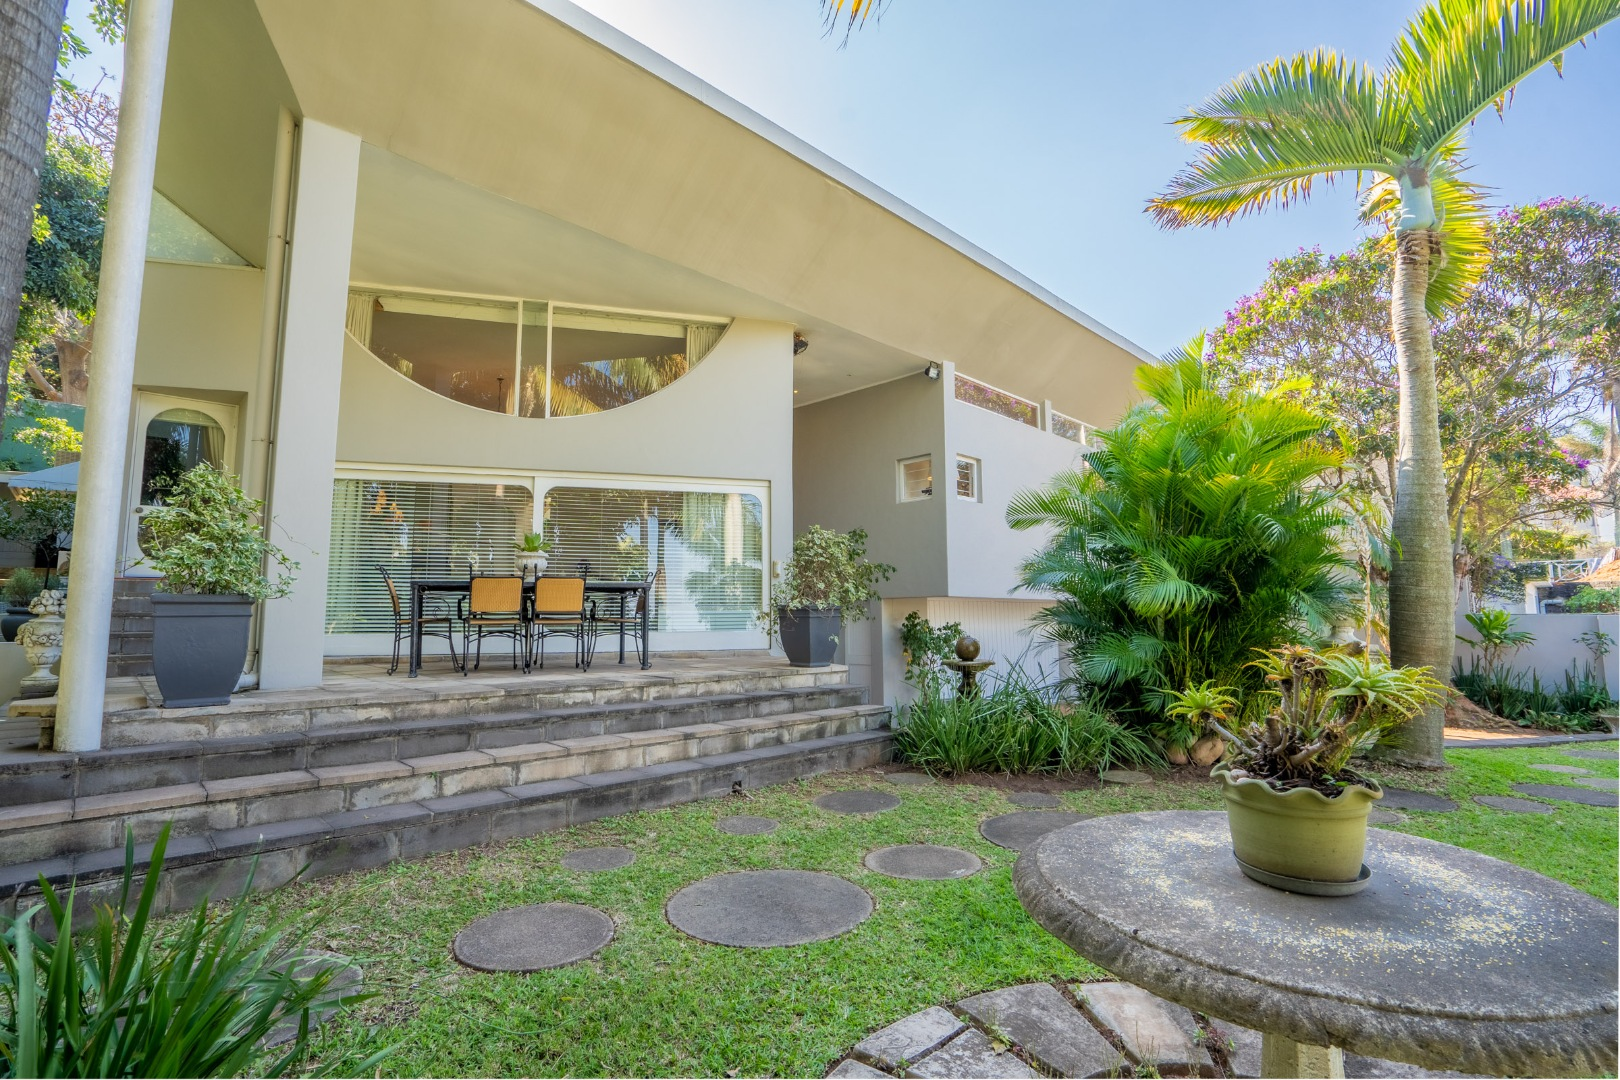 4 Bedroom House For Sale in Musgrave